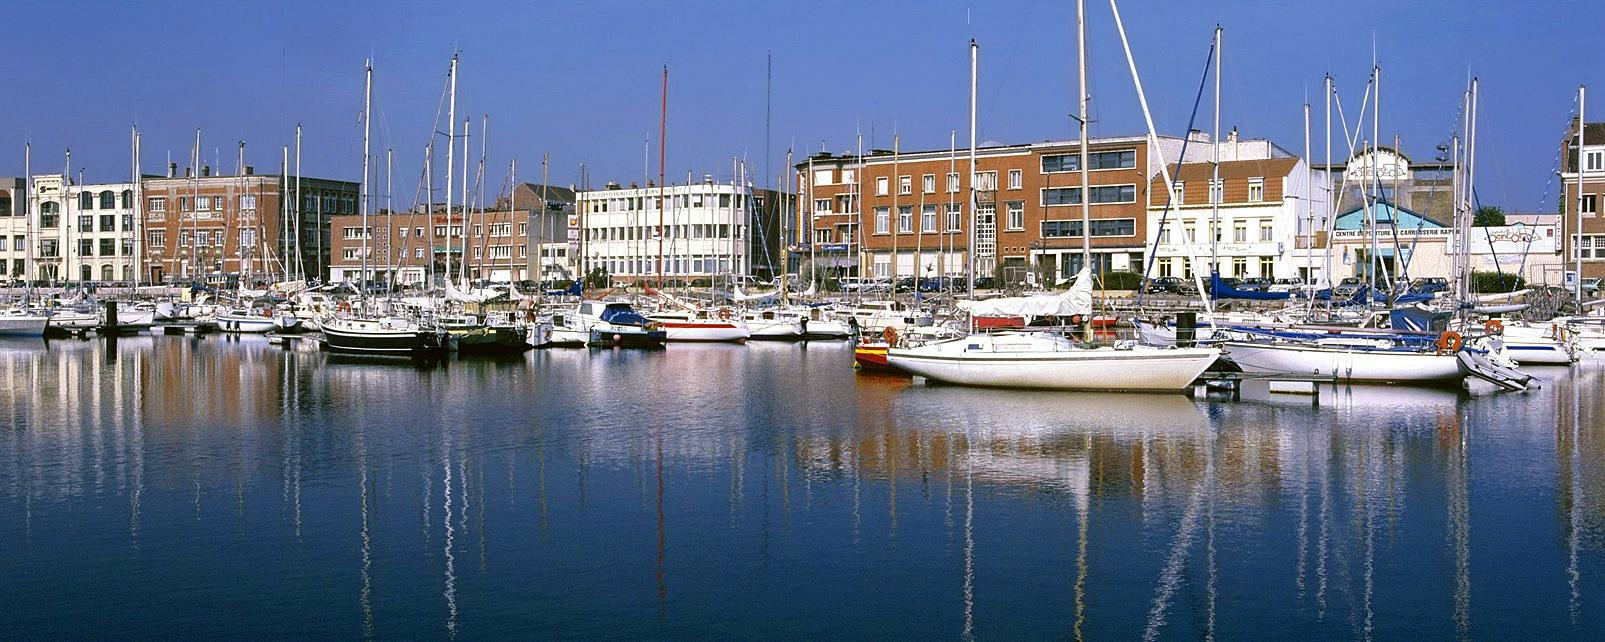 Hotels In Dunkerque France